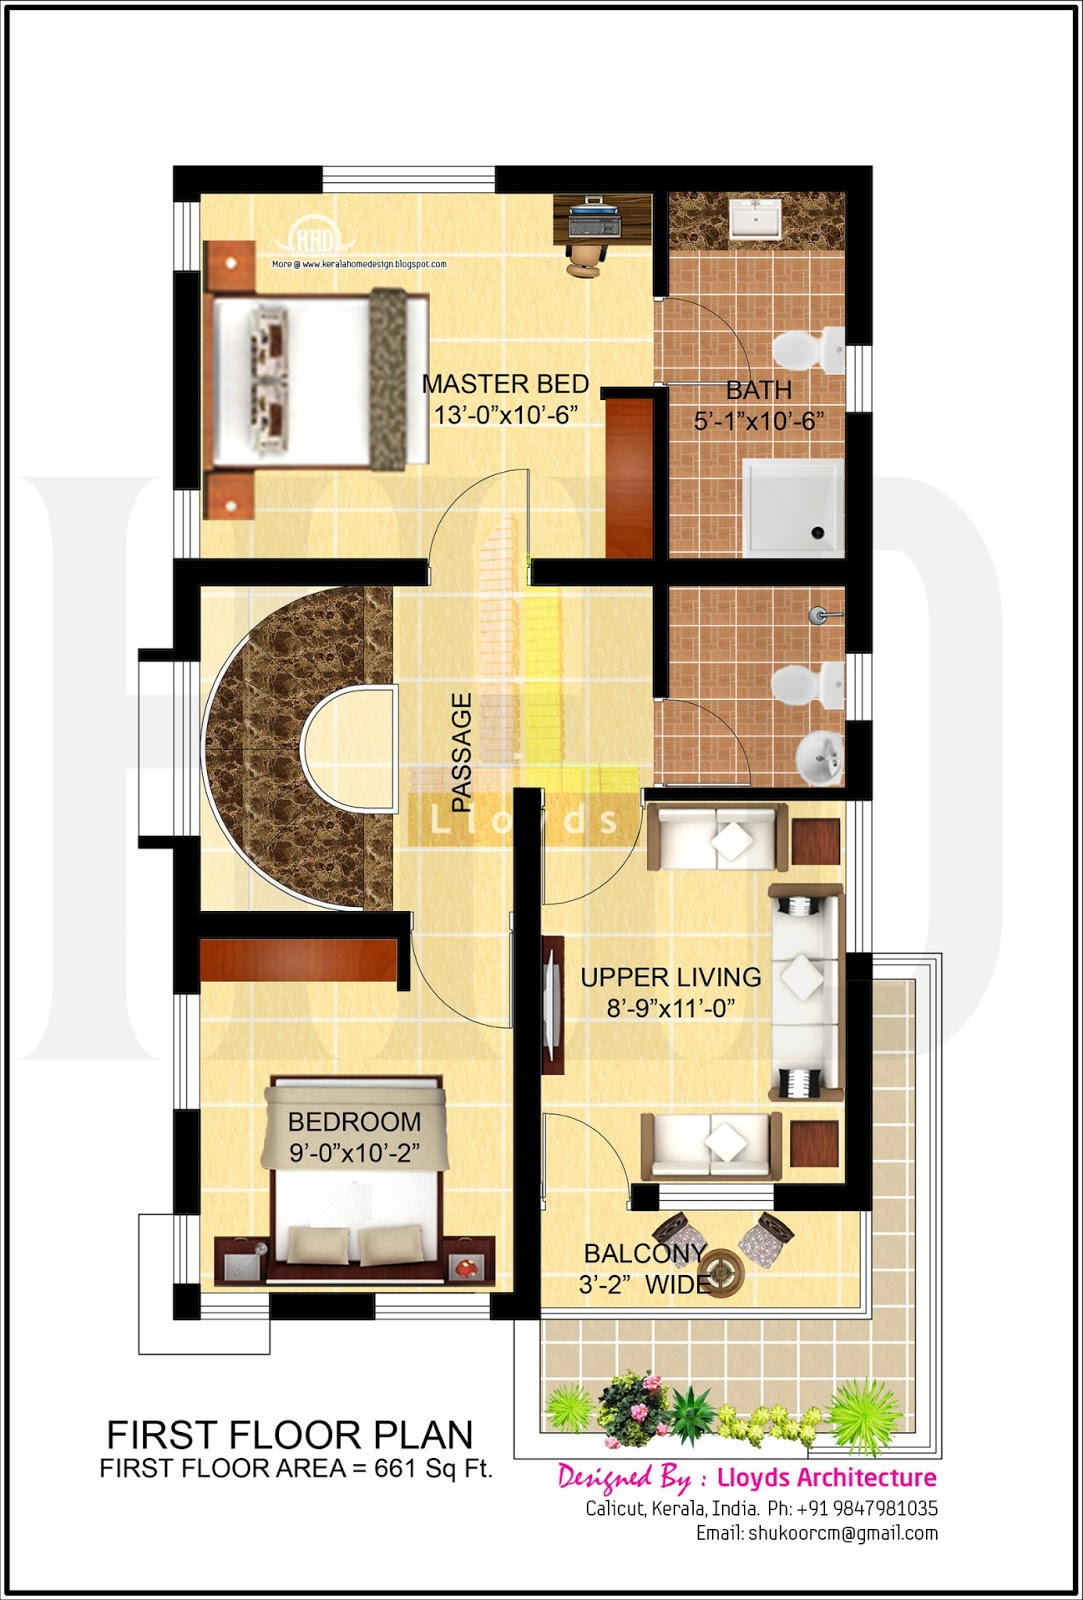 4 bedroom house plan in less that 3 cents home kerala plans for Four bedroom house plans